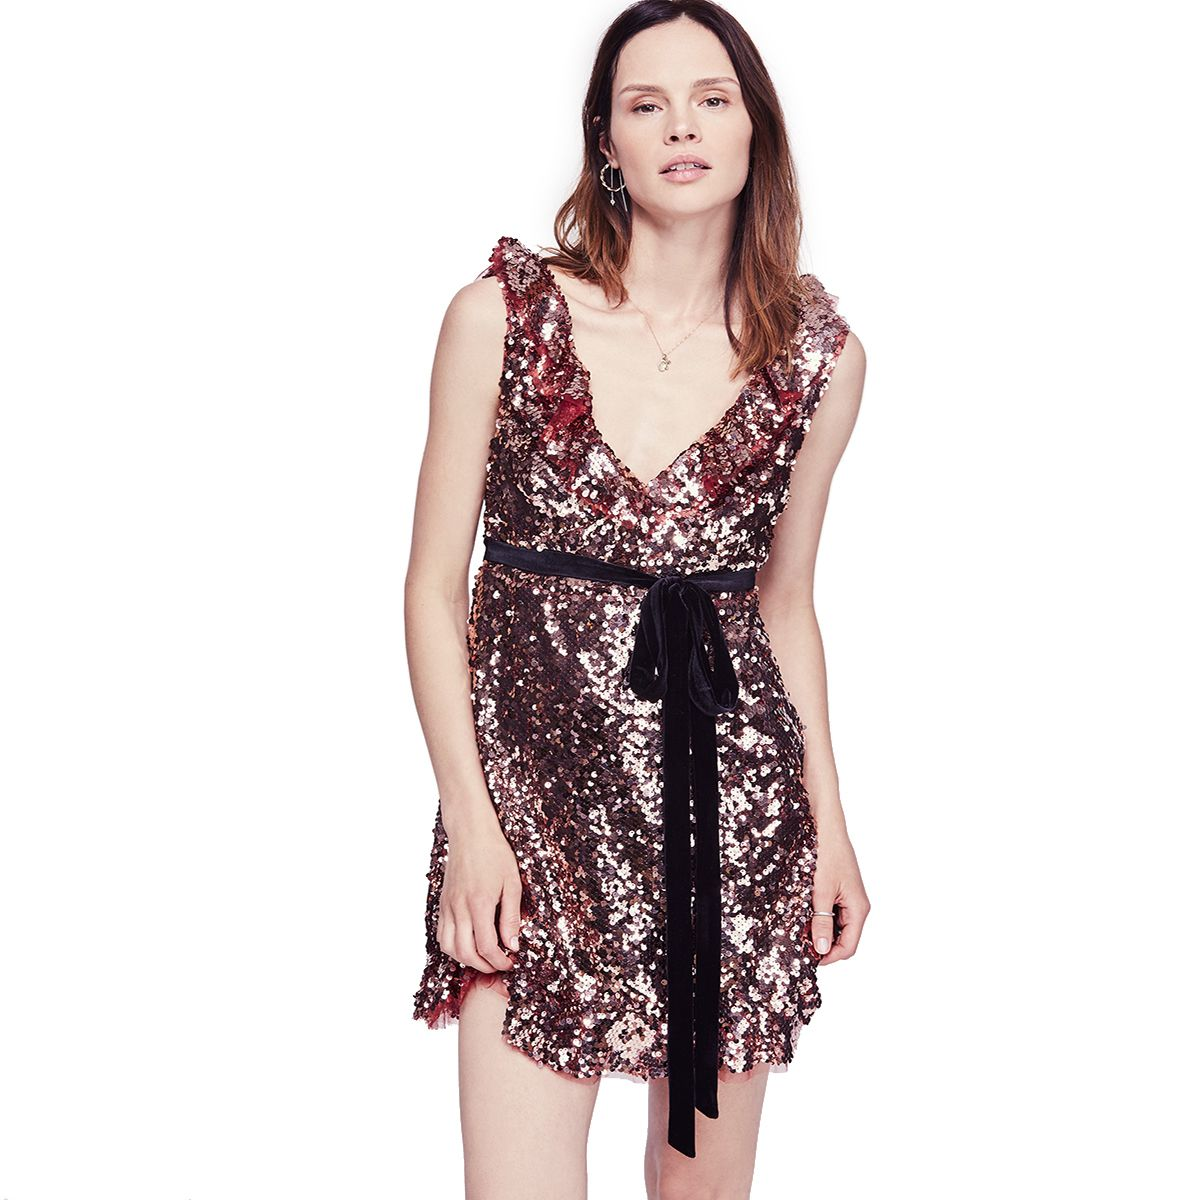 2a1b85d3fd Free People Dresses for Women - Macy's